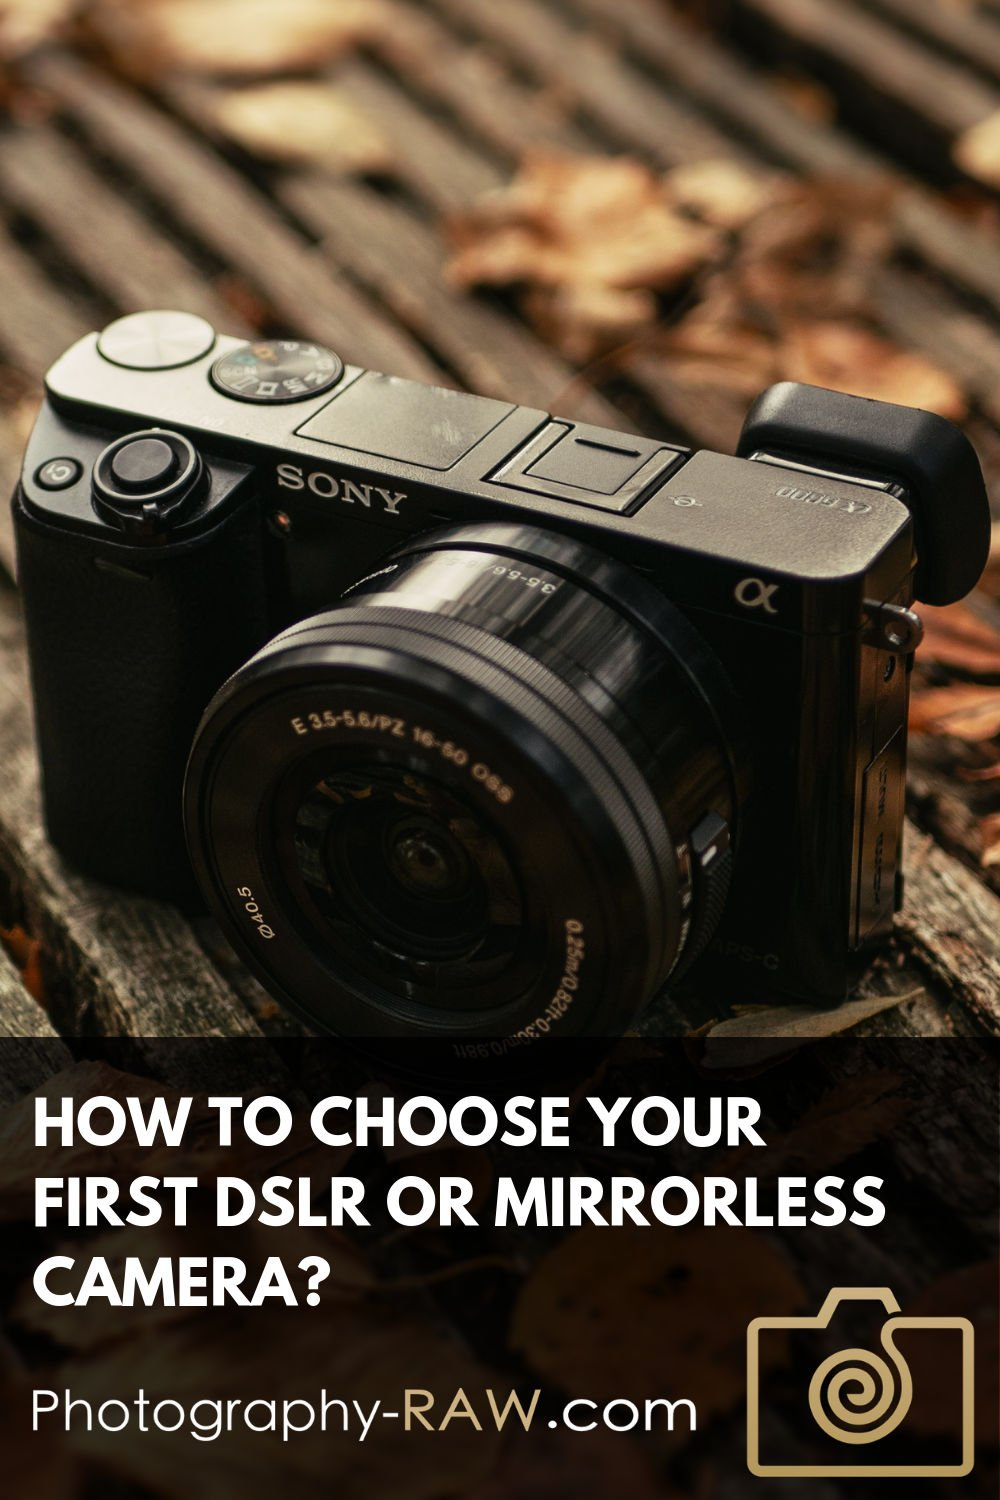 How to Choose Your First DSLR or Mirrorless Camera